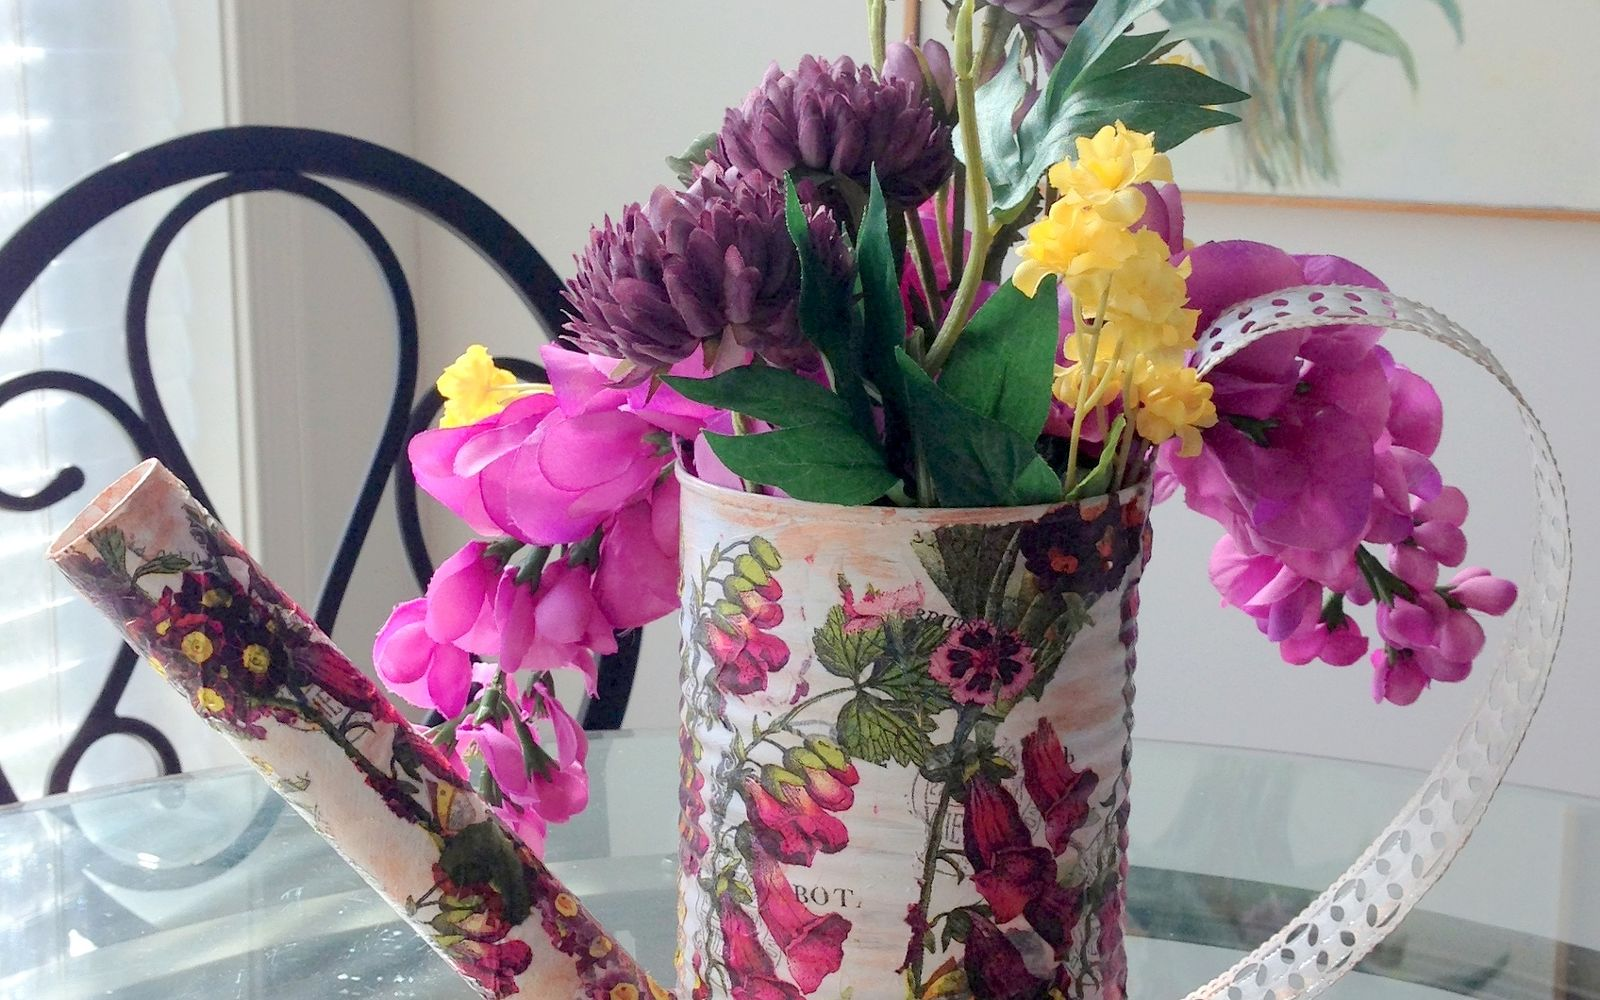 s save your old cans for these 30 home decor ideas, Craft a decorative watering can